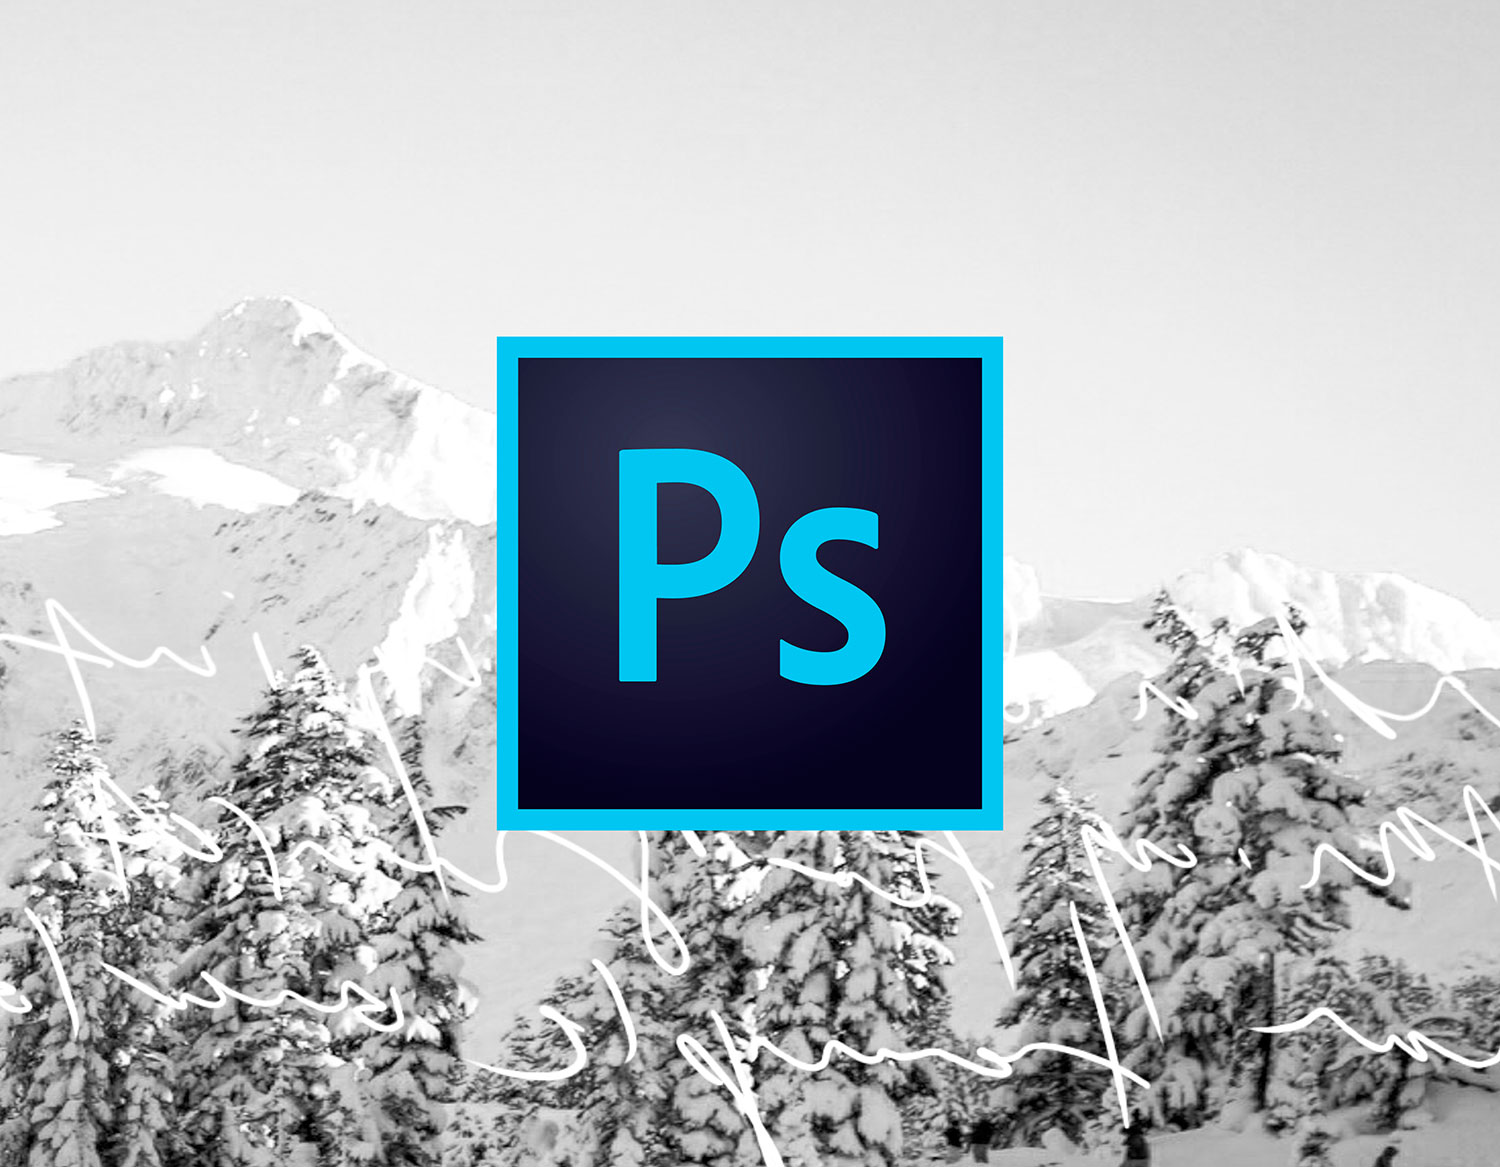 2 :: Adobe Photoshop - You can grab a free trial that gives you 7 days access.